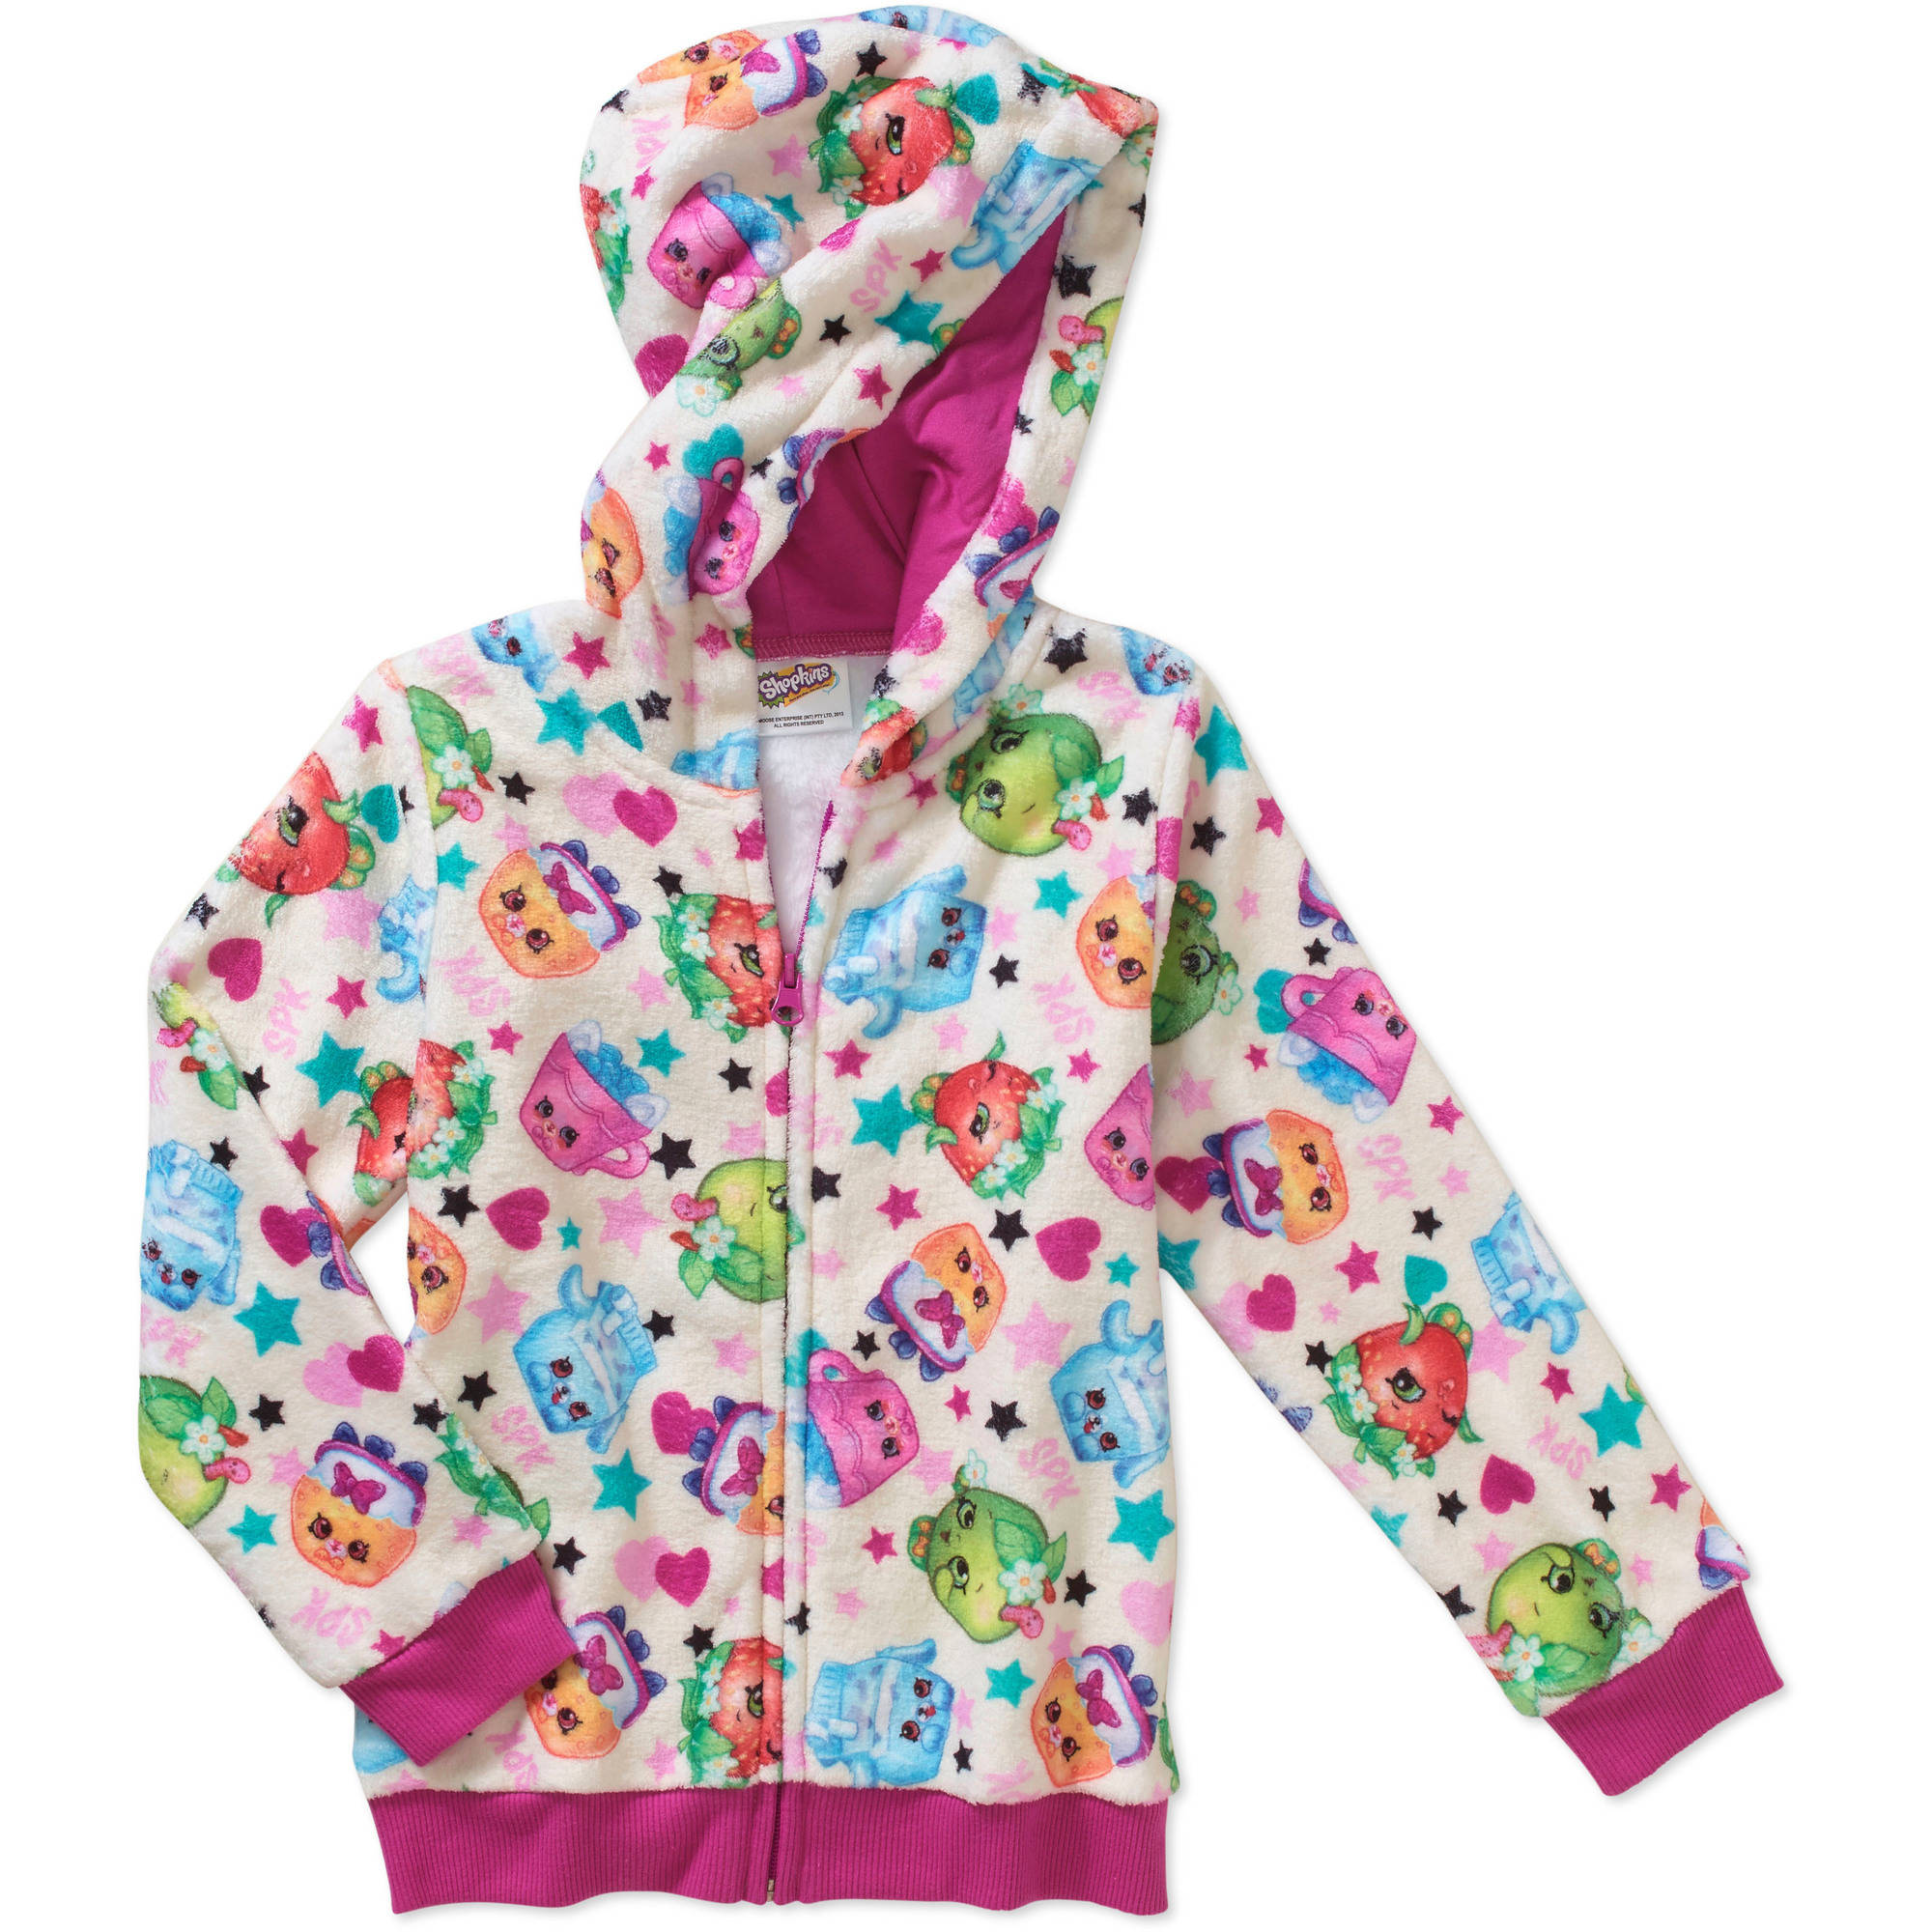 Shopkins Girls' Shopkins Petkins Hooded Sweater with Front Zipper